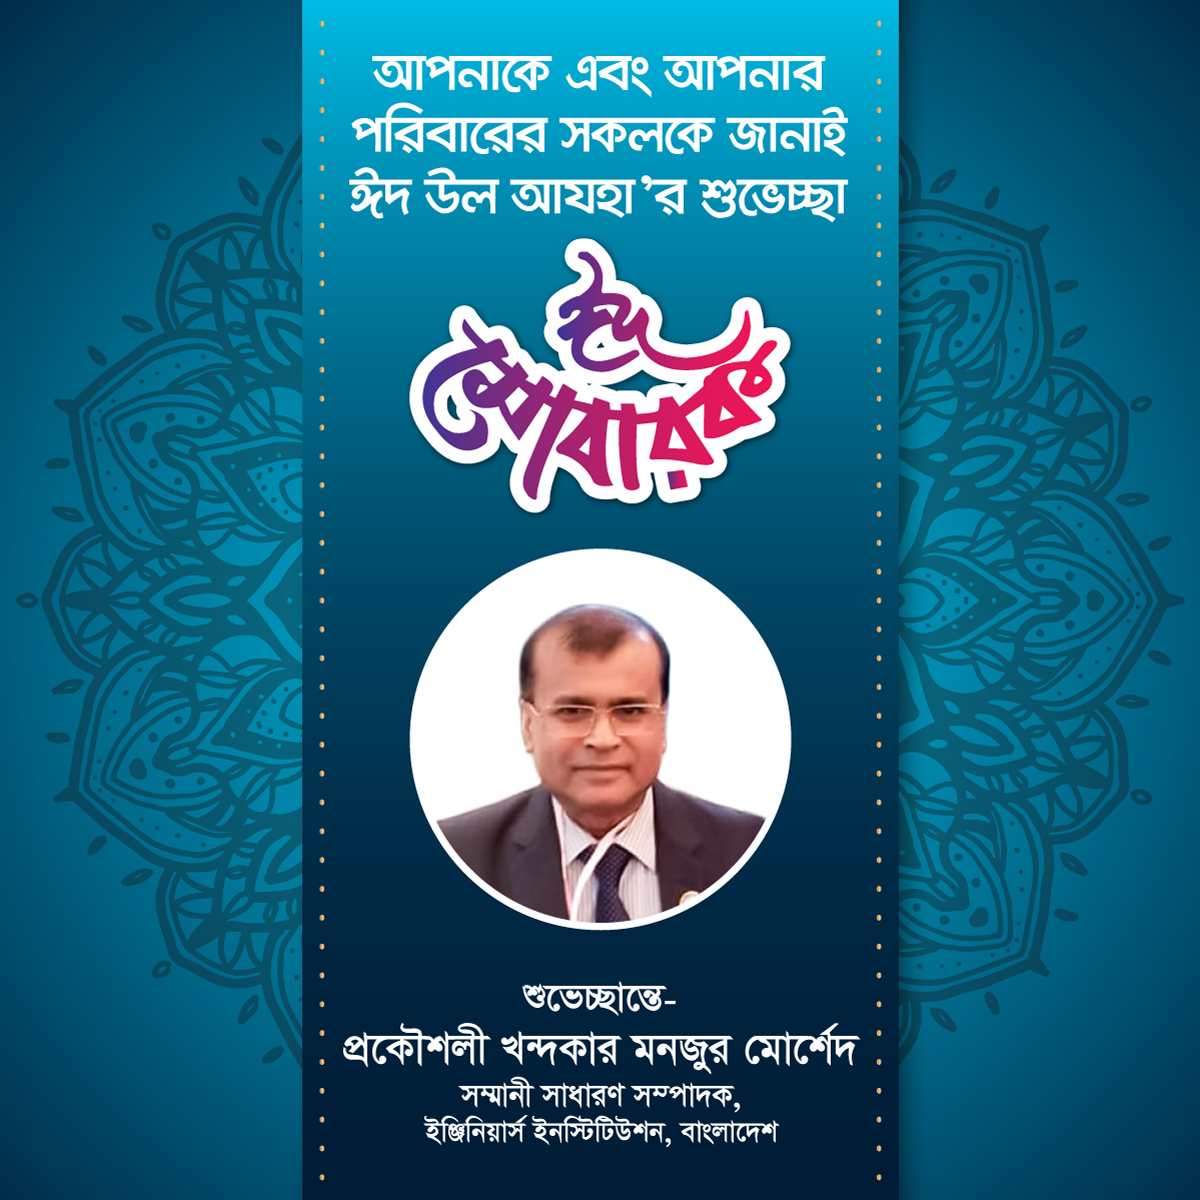 May Eid Ul Adha gives us lesson to sacrifice, tolerance and fellow-feelings for the cause of humanity.